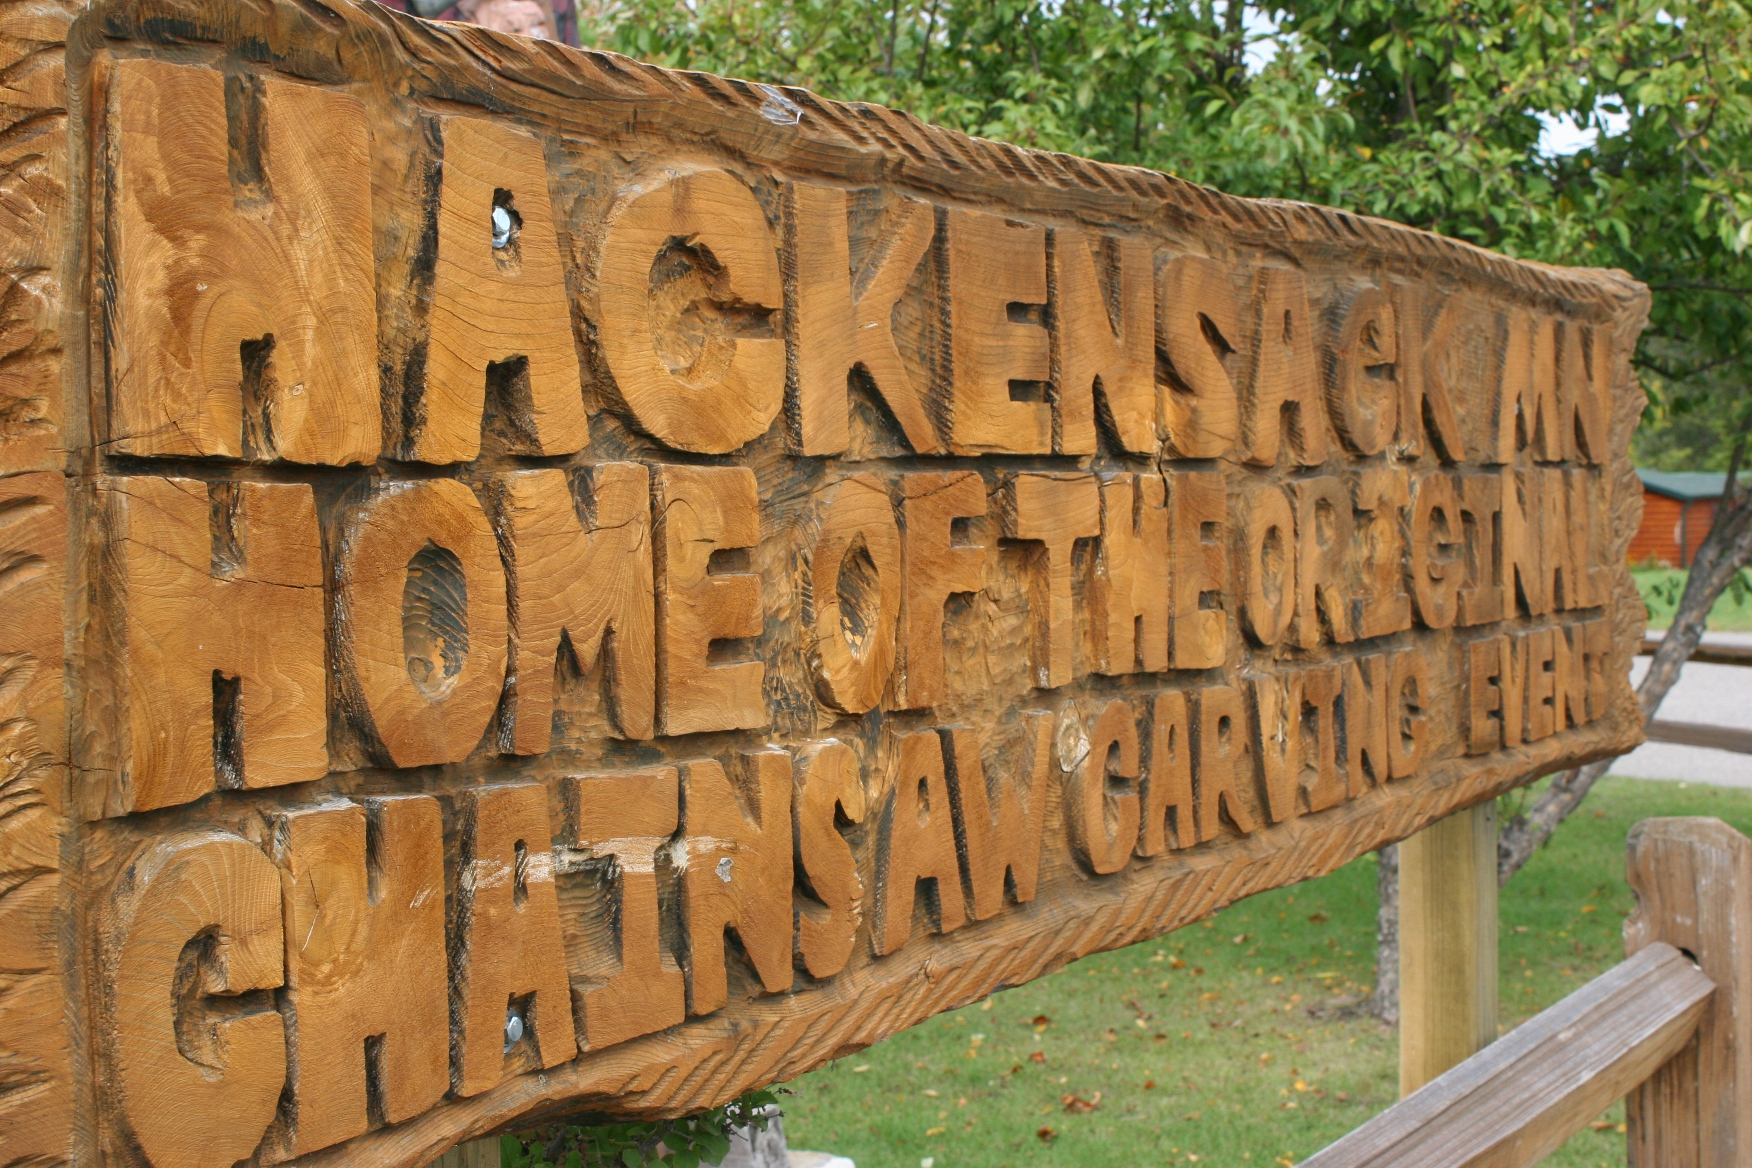 Hackensack chainsaw carving sign minnesota prairie